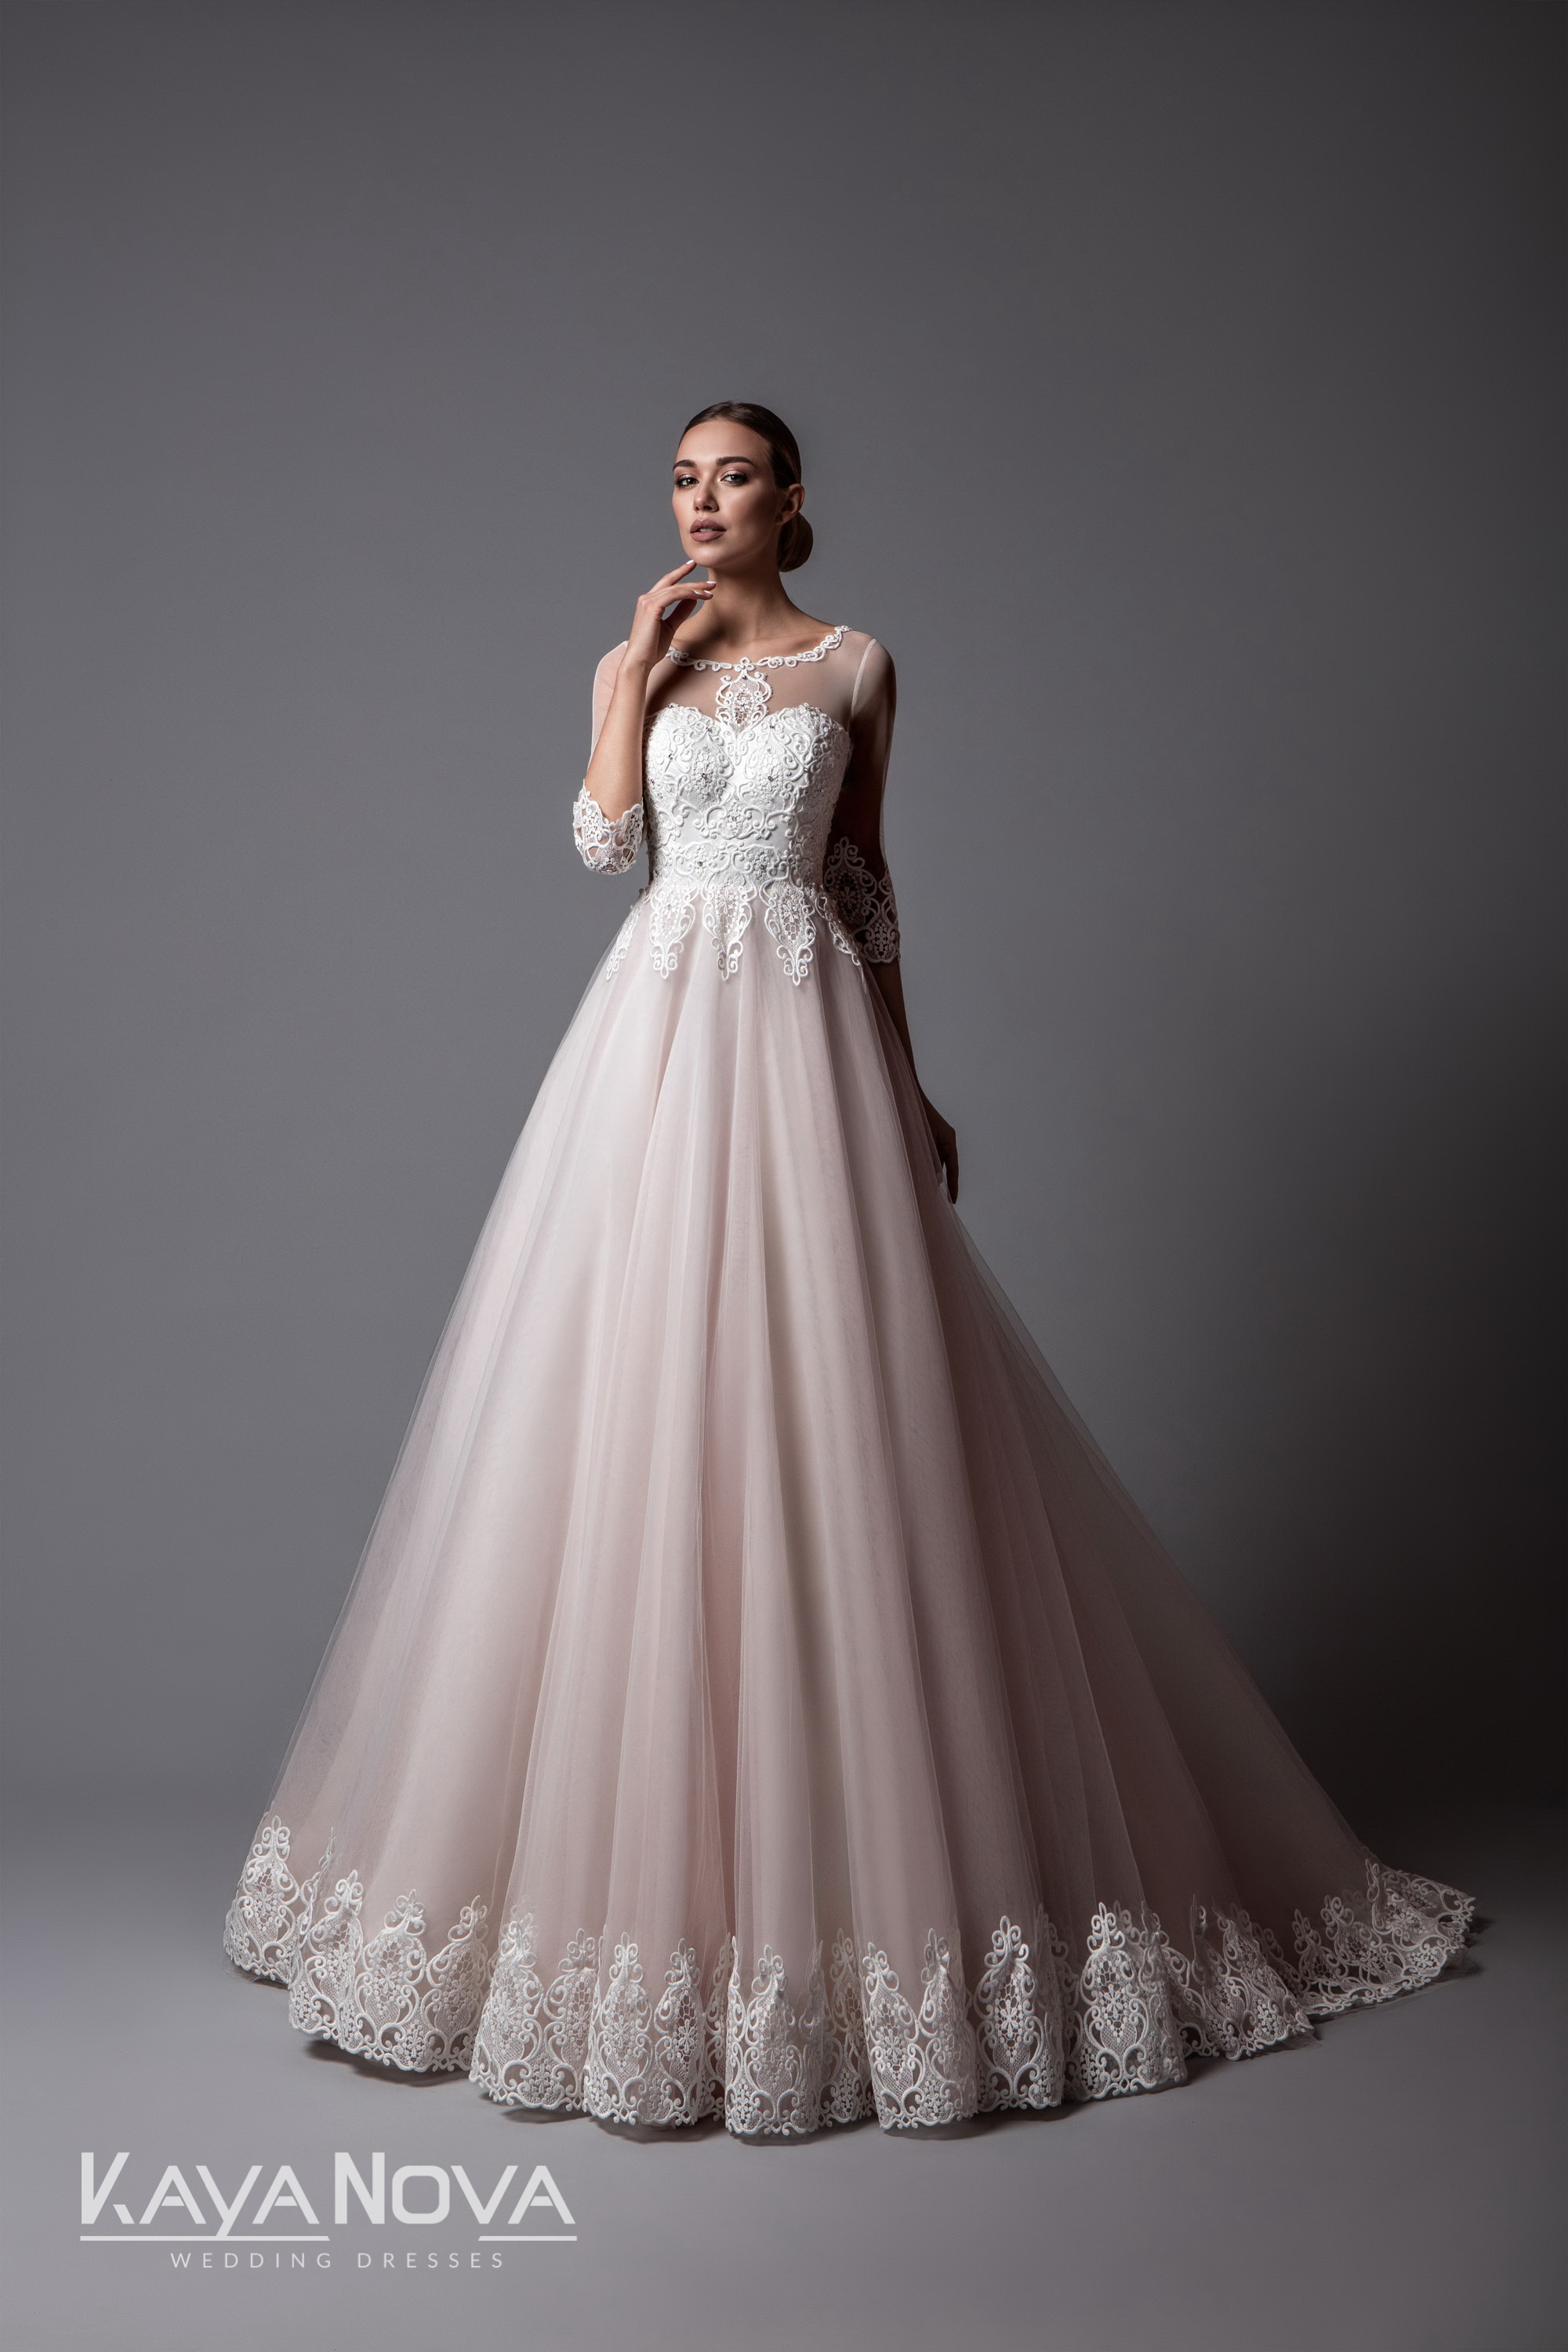 https://kayawedding.com/images/stories/virtuemart/product/Elena 1.jpg